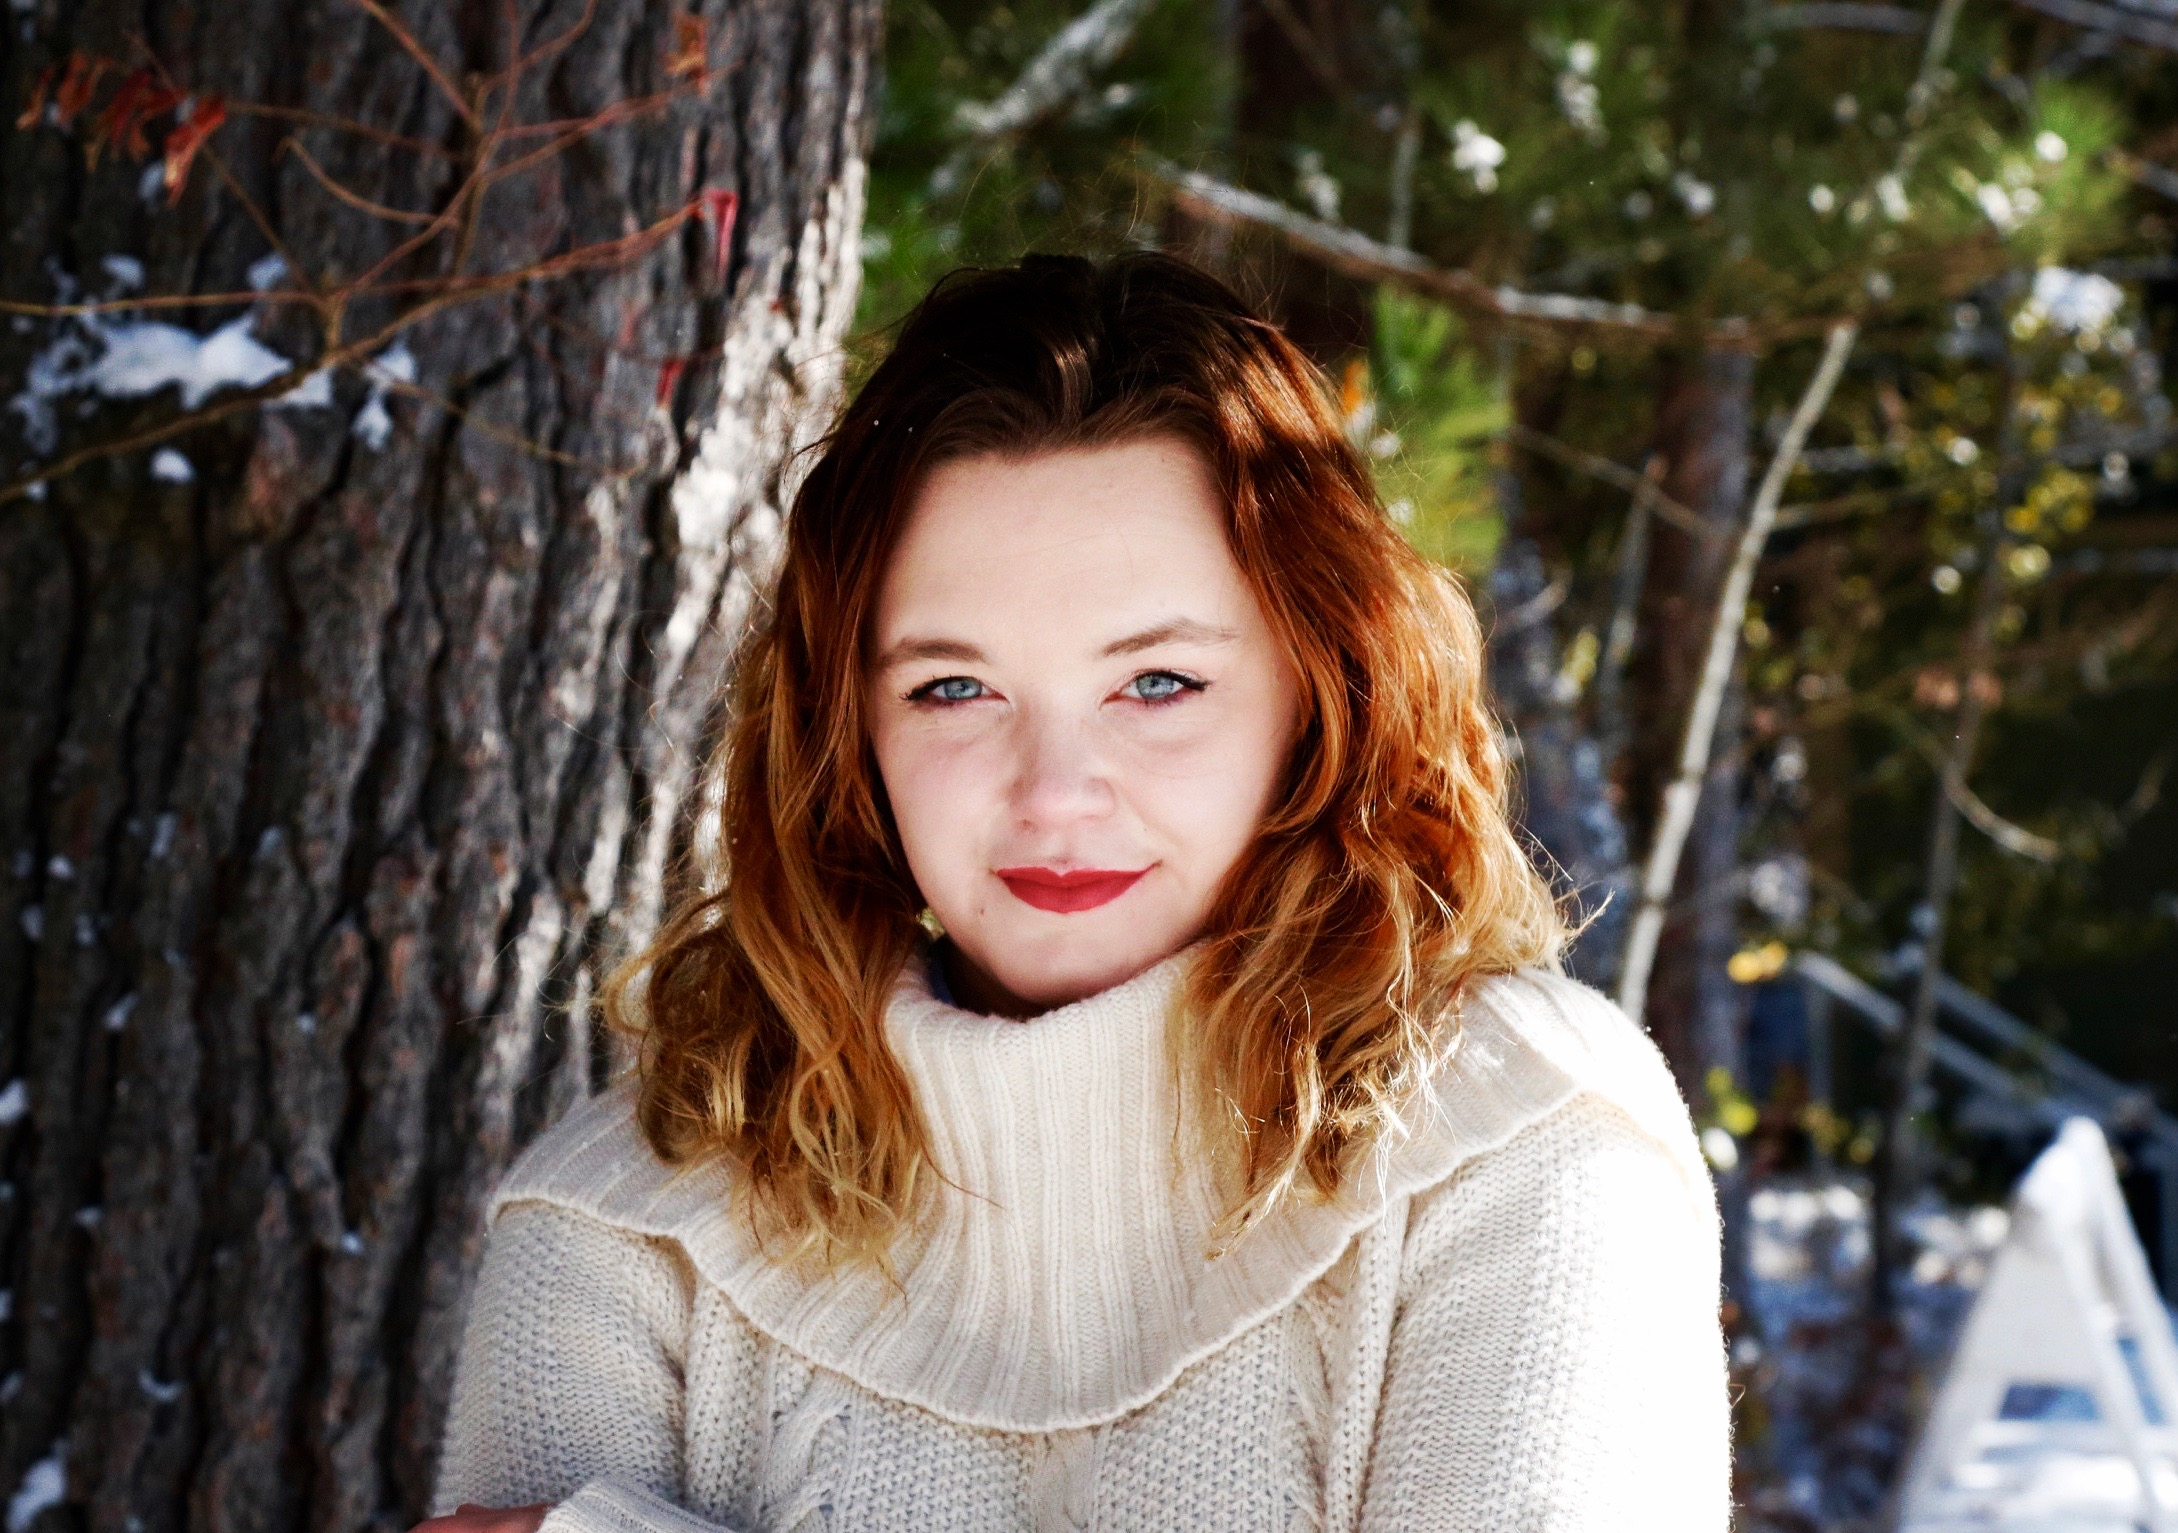 genevieve harding - Genevieve Harding is a recent graduate of Interlochen Arts Academy's Creative Writing Program in northern Michigan. Her works have been featured in The Noisy Island, The Red Wheelbarrow,and Central Ohio's teen literary journal Flip The Page. Genevieve served as a lead editor for this year's issue of The Interlochen Review. She will be attending Kenyon College in the fall.